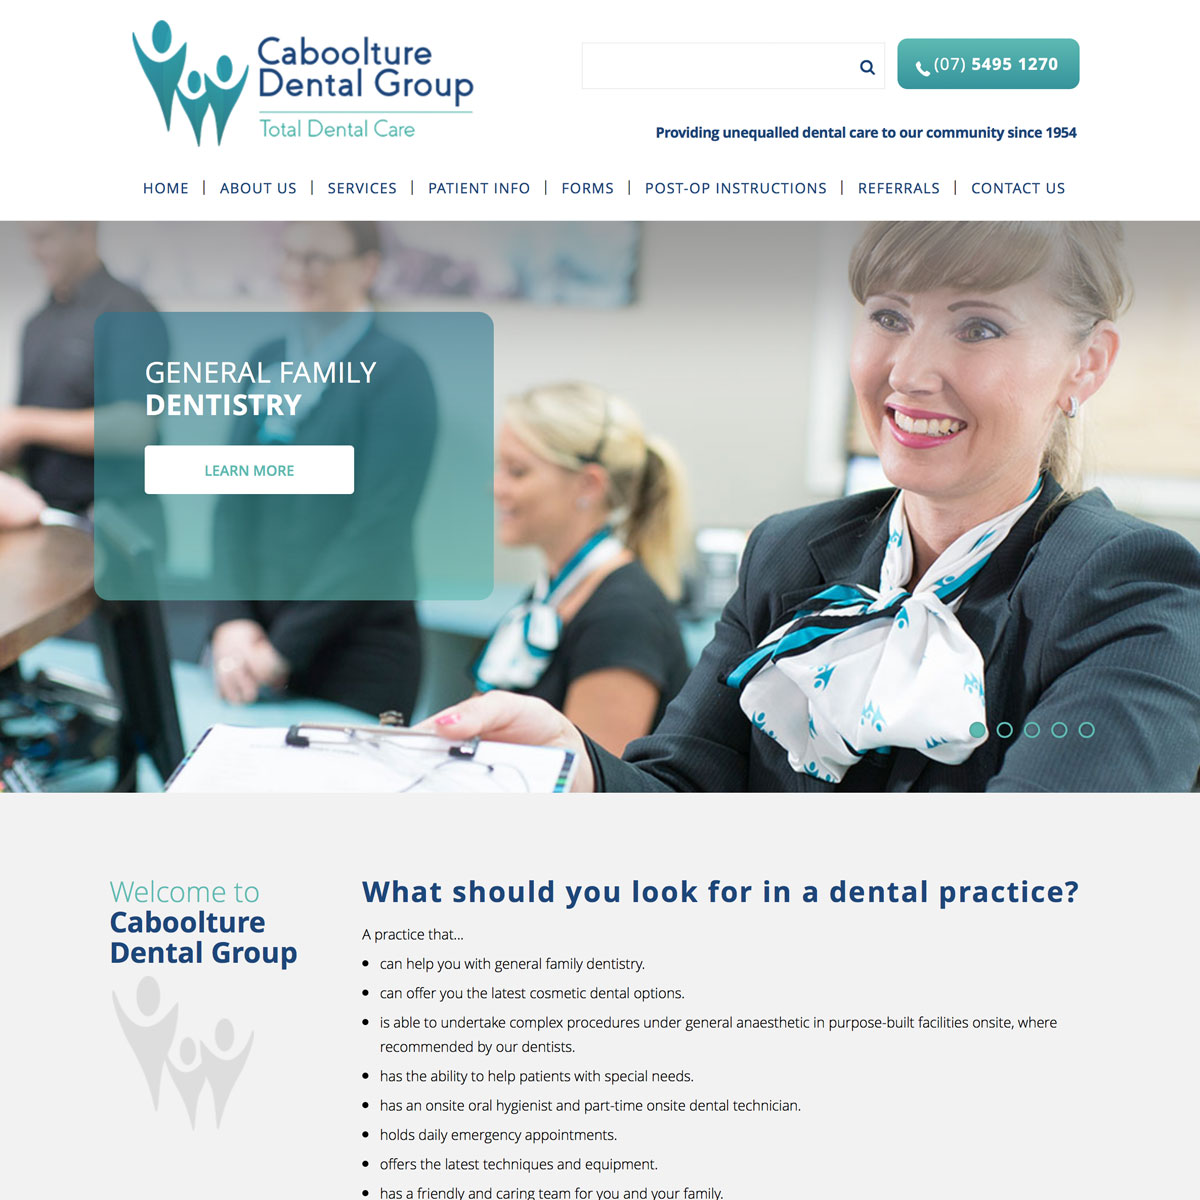 Caboolture Dental - Home Page